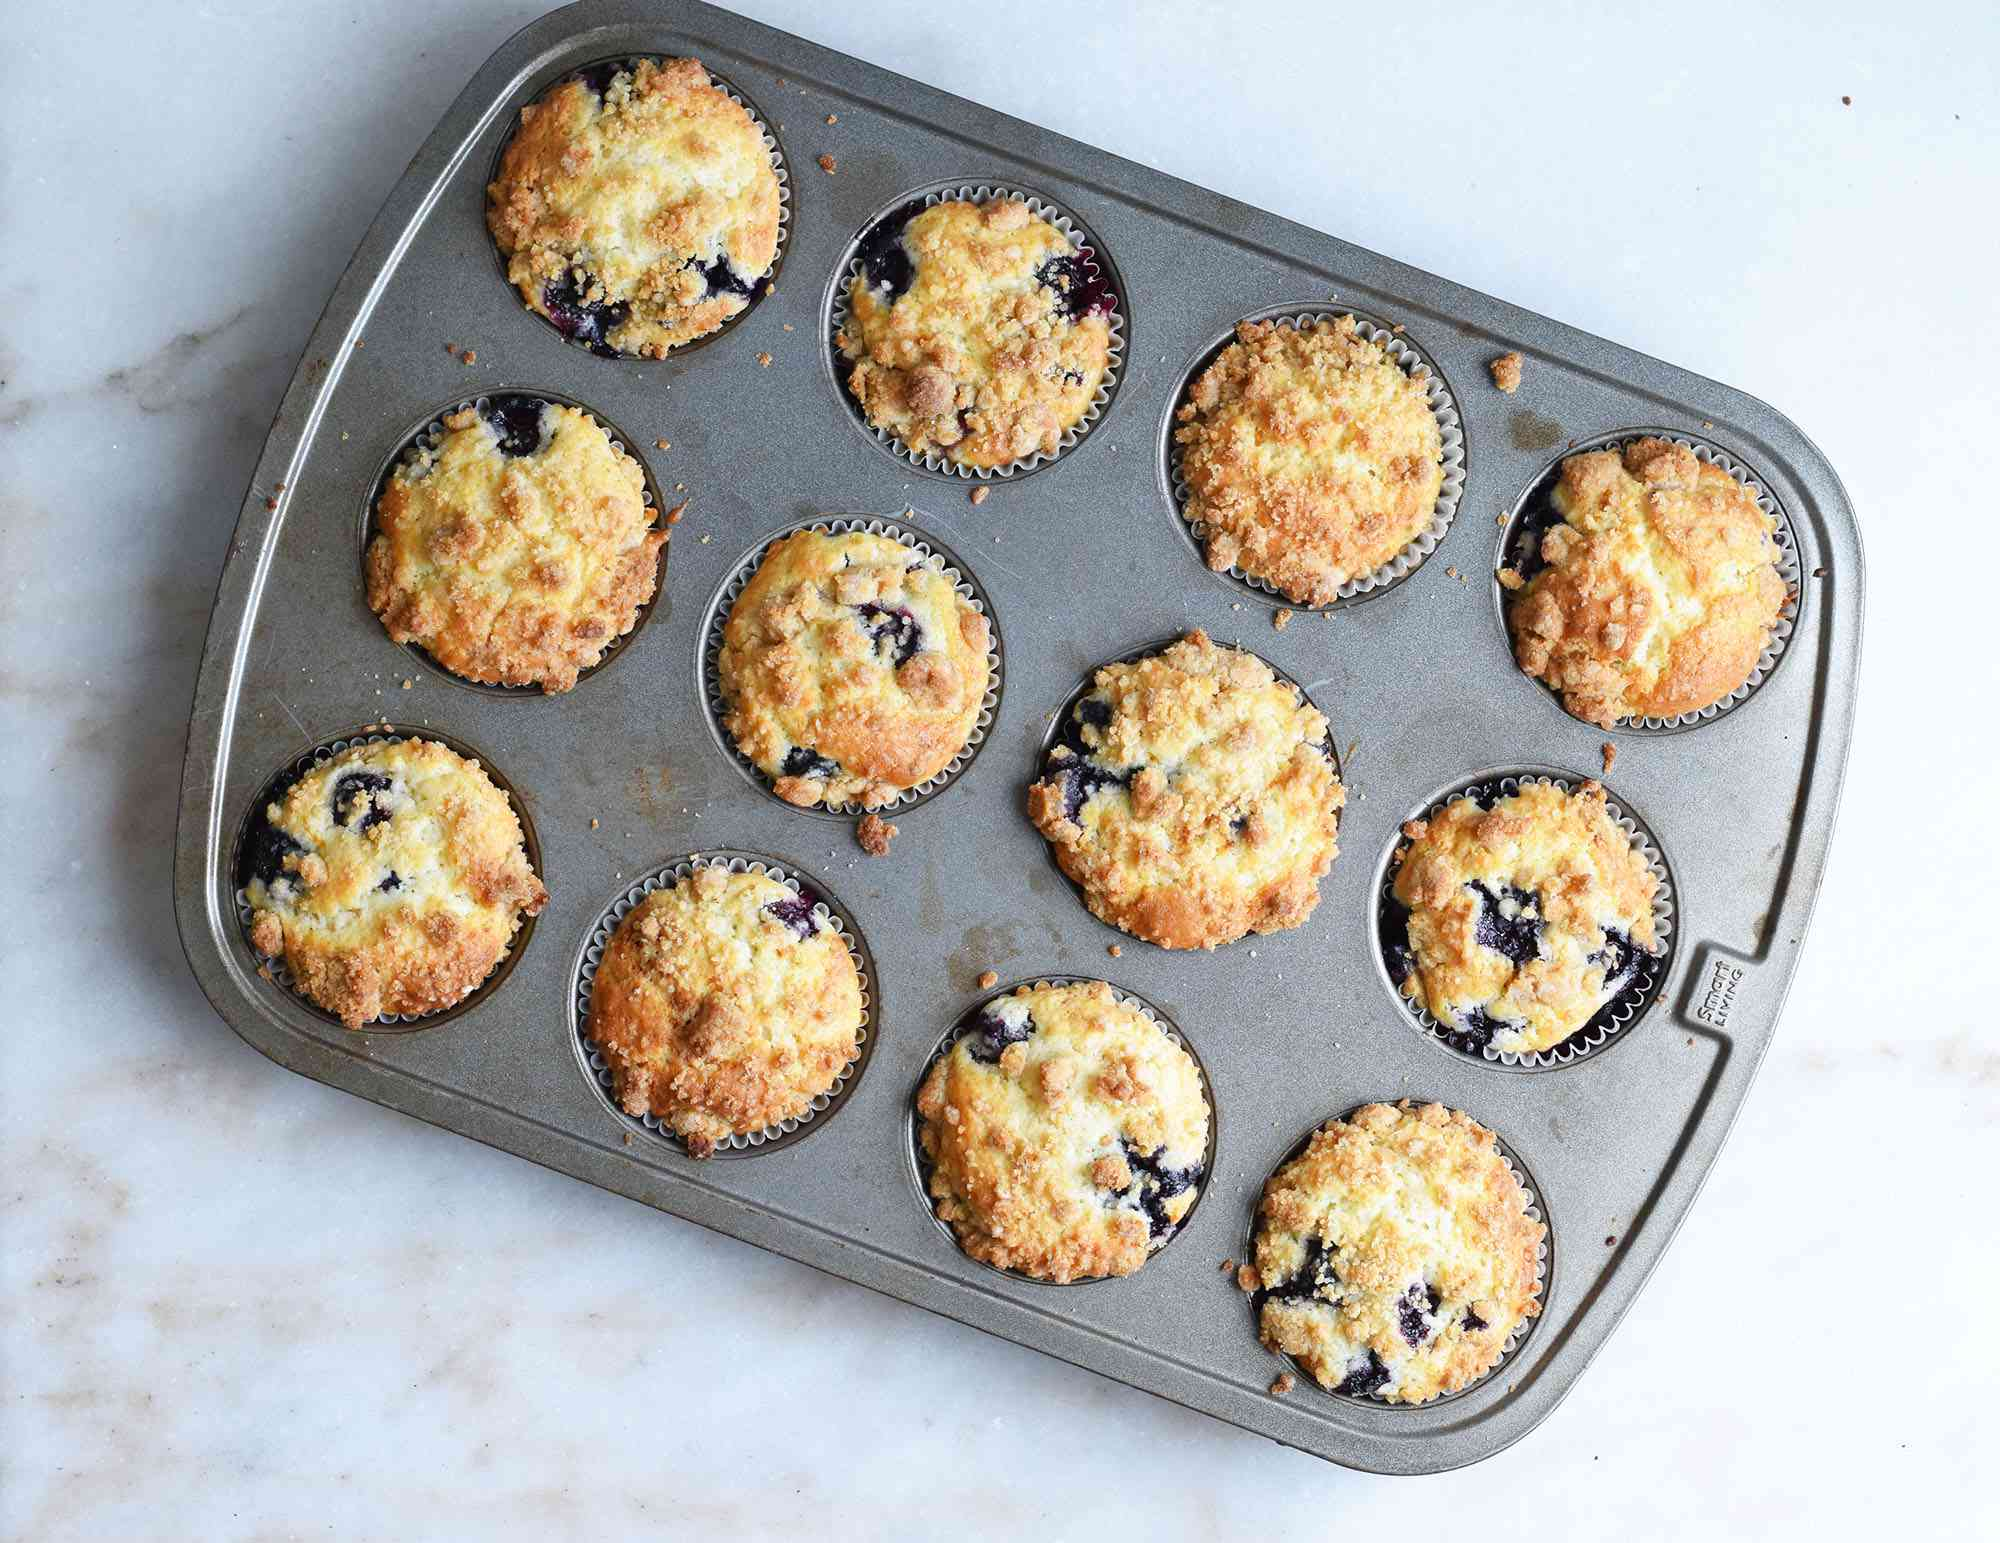 baked blueberry muffins in a muffin tin